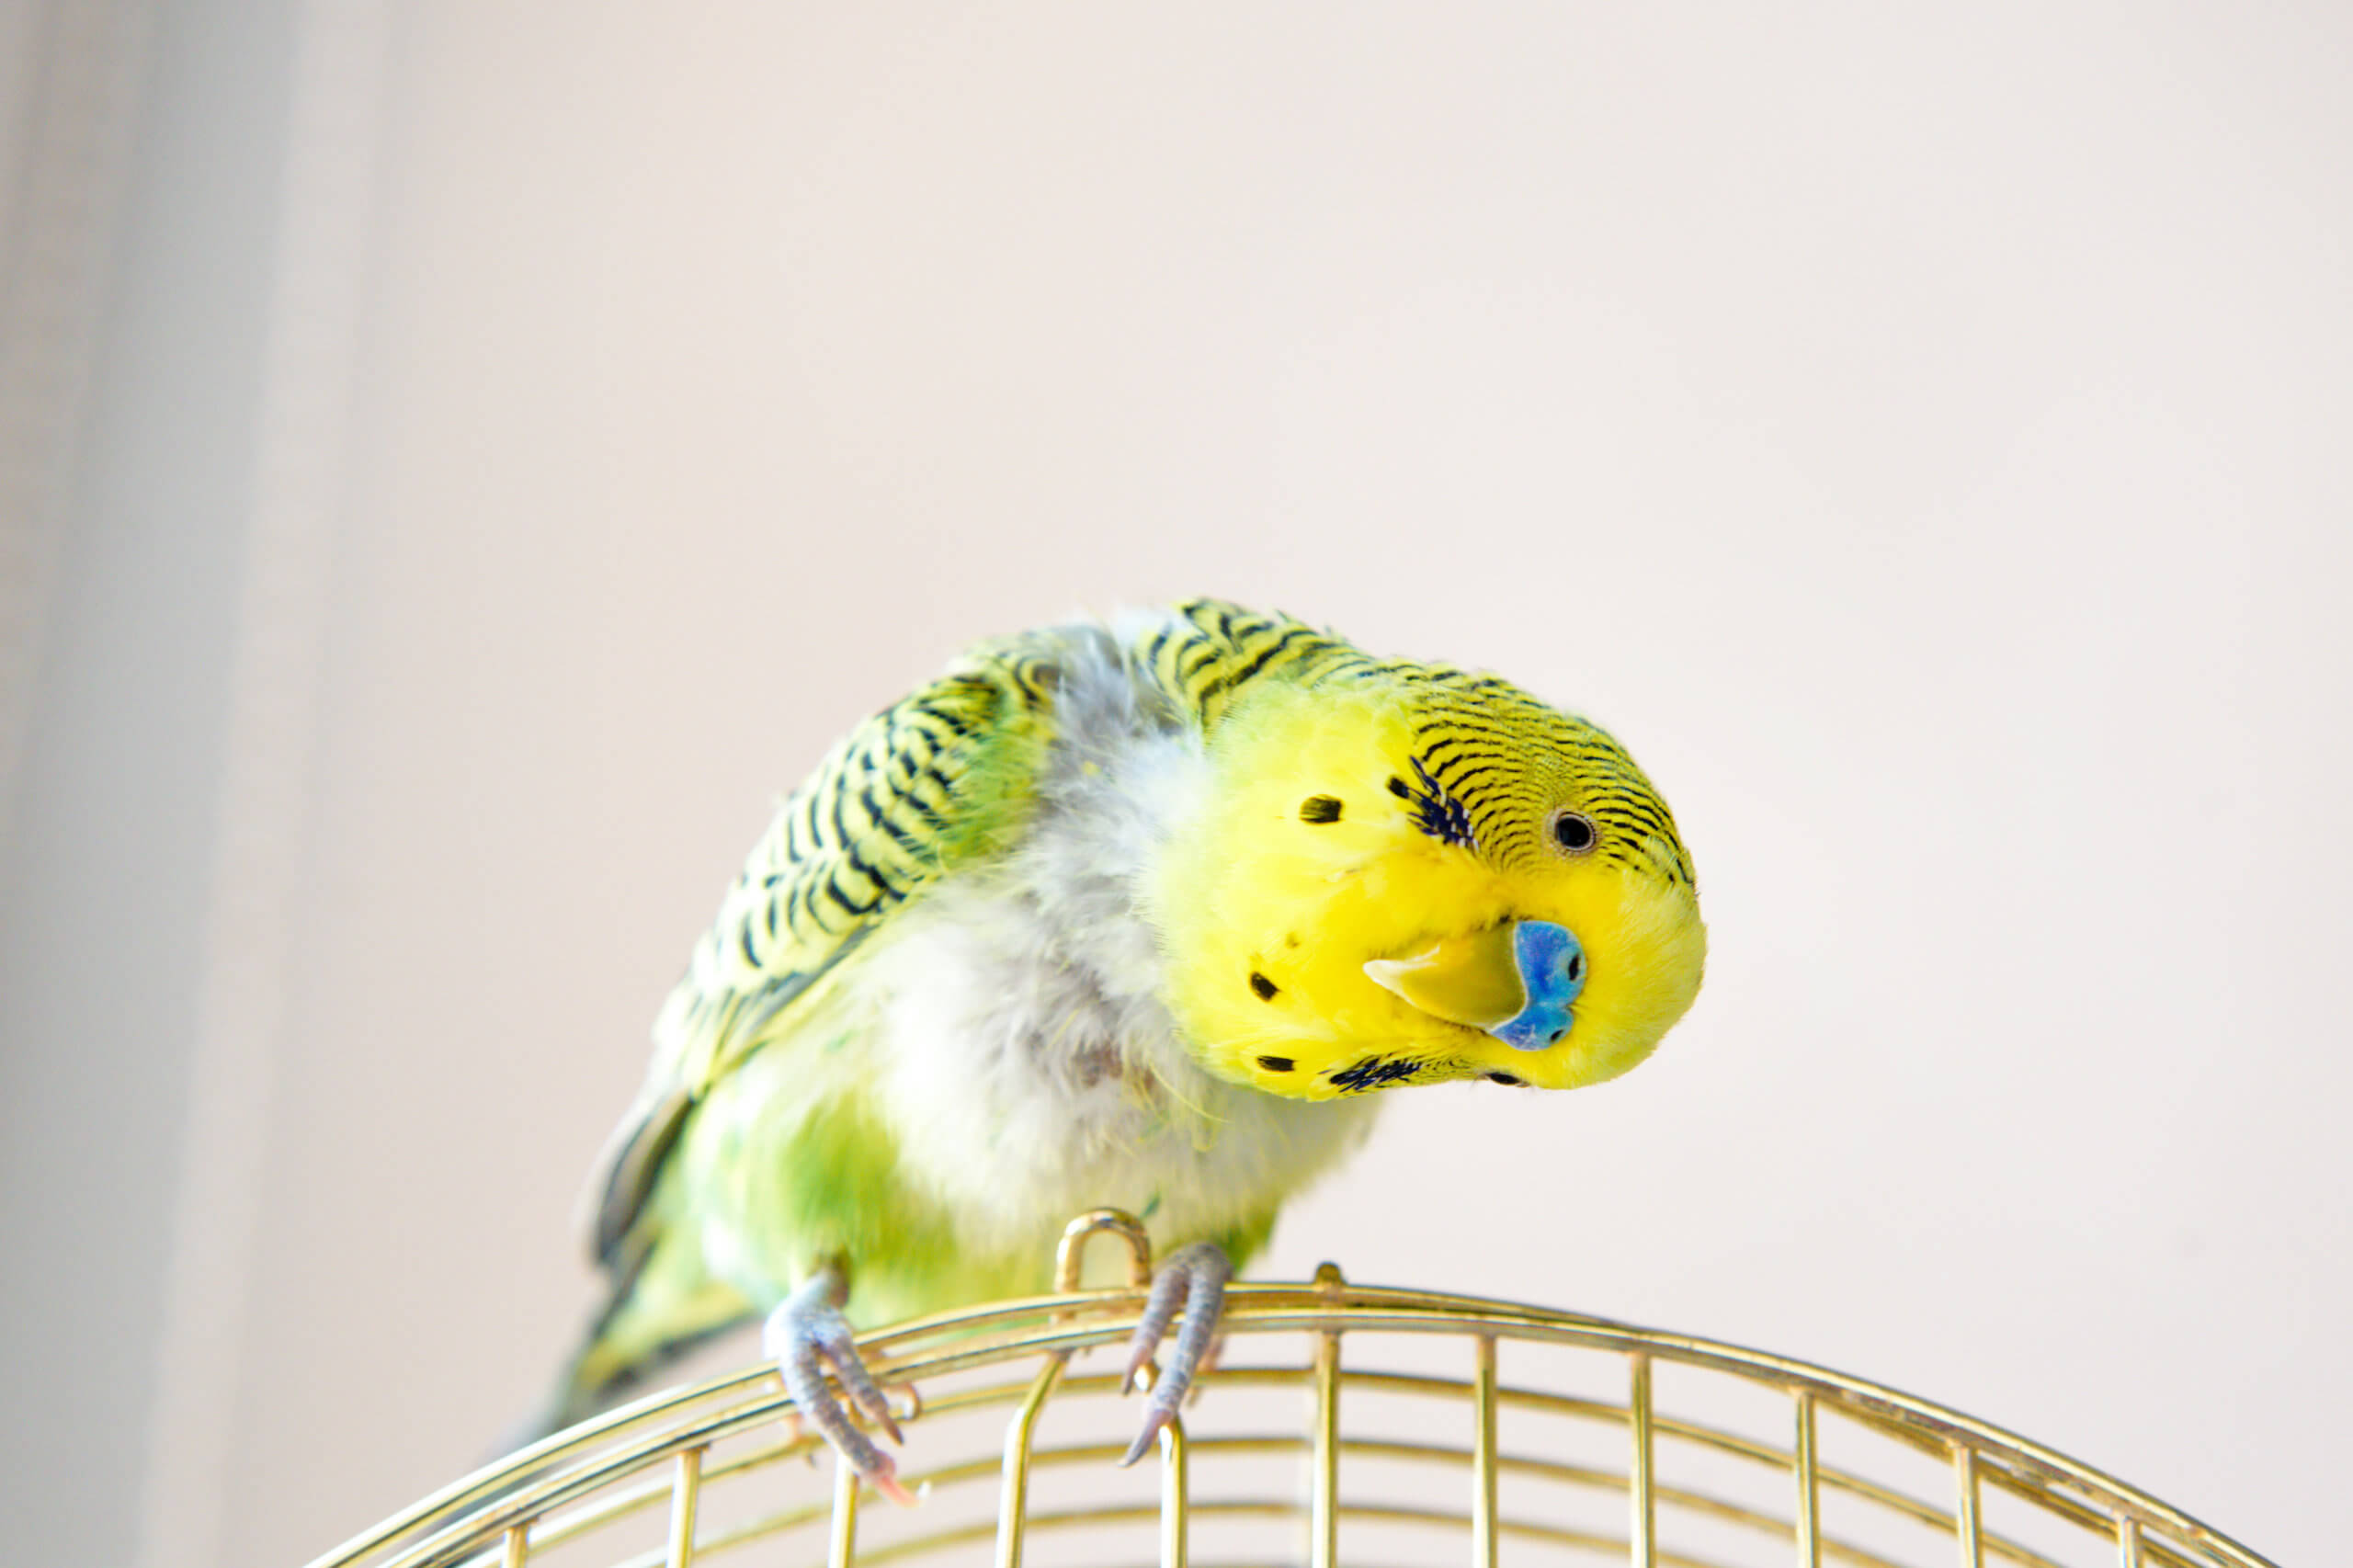 Domestic budgie parrot, poultry with a health problem after moulting. A green Budgerigar with plucked breast, without feathers.